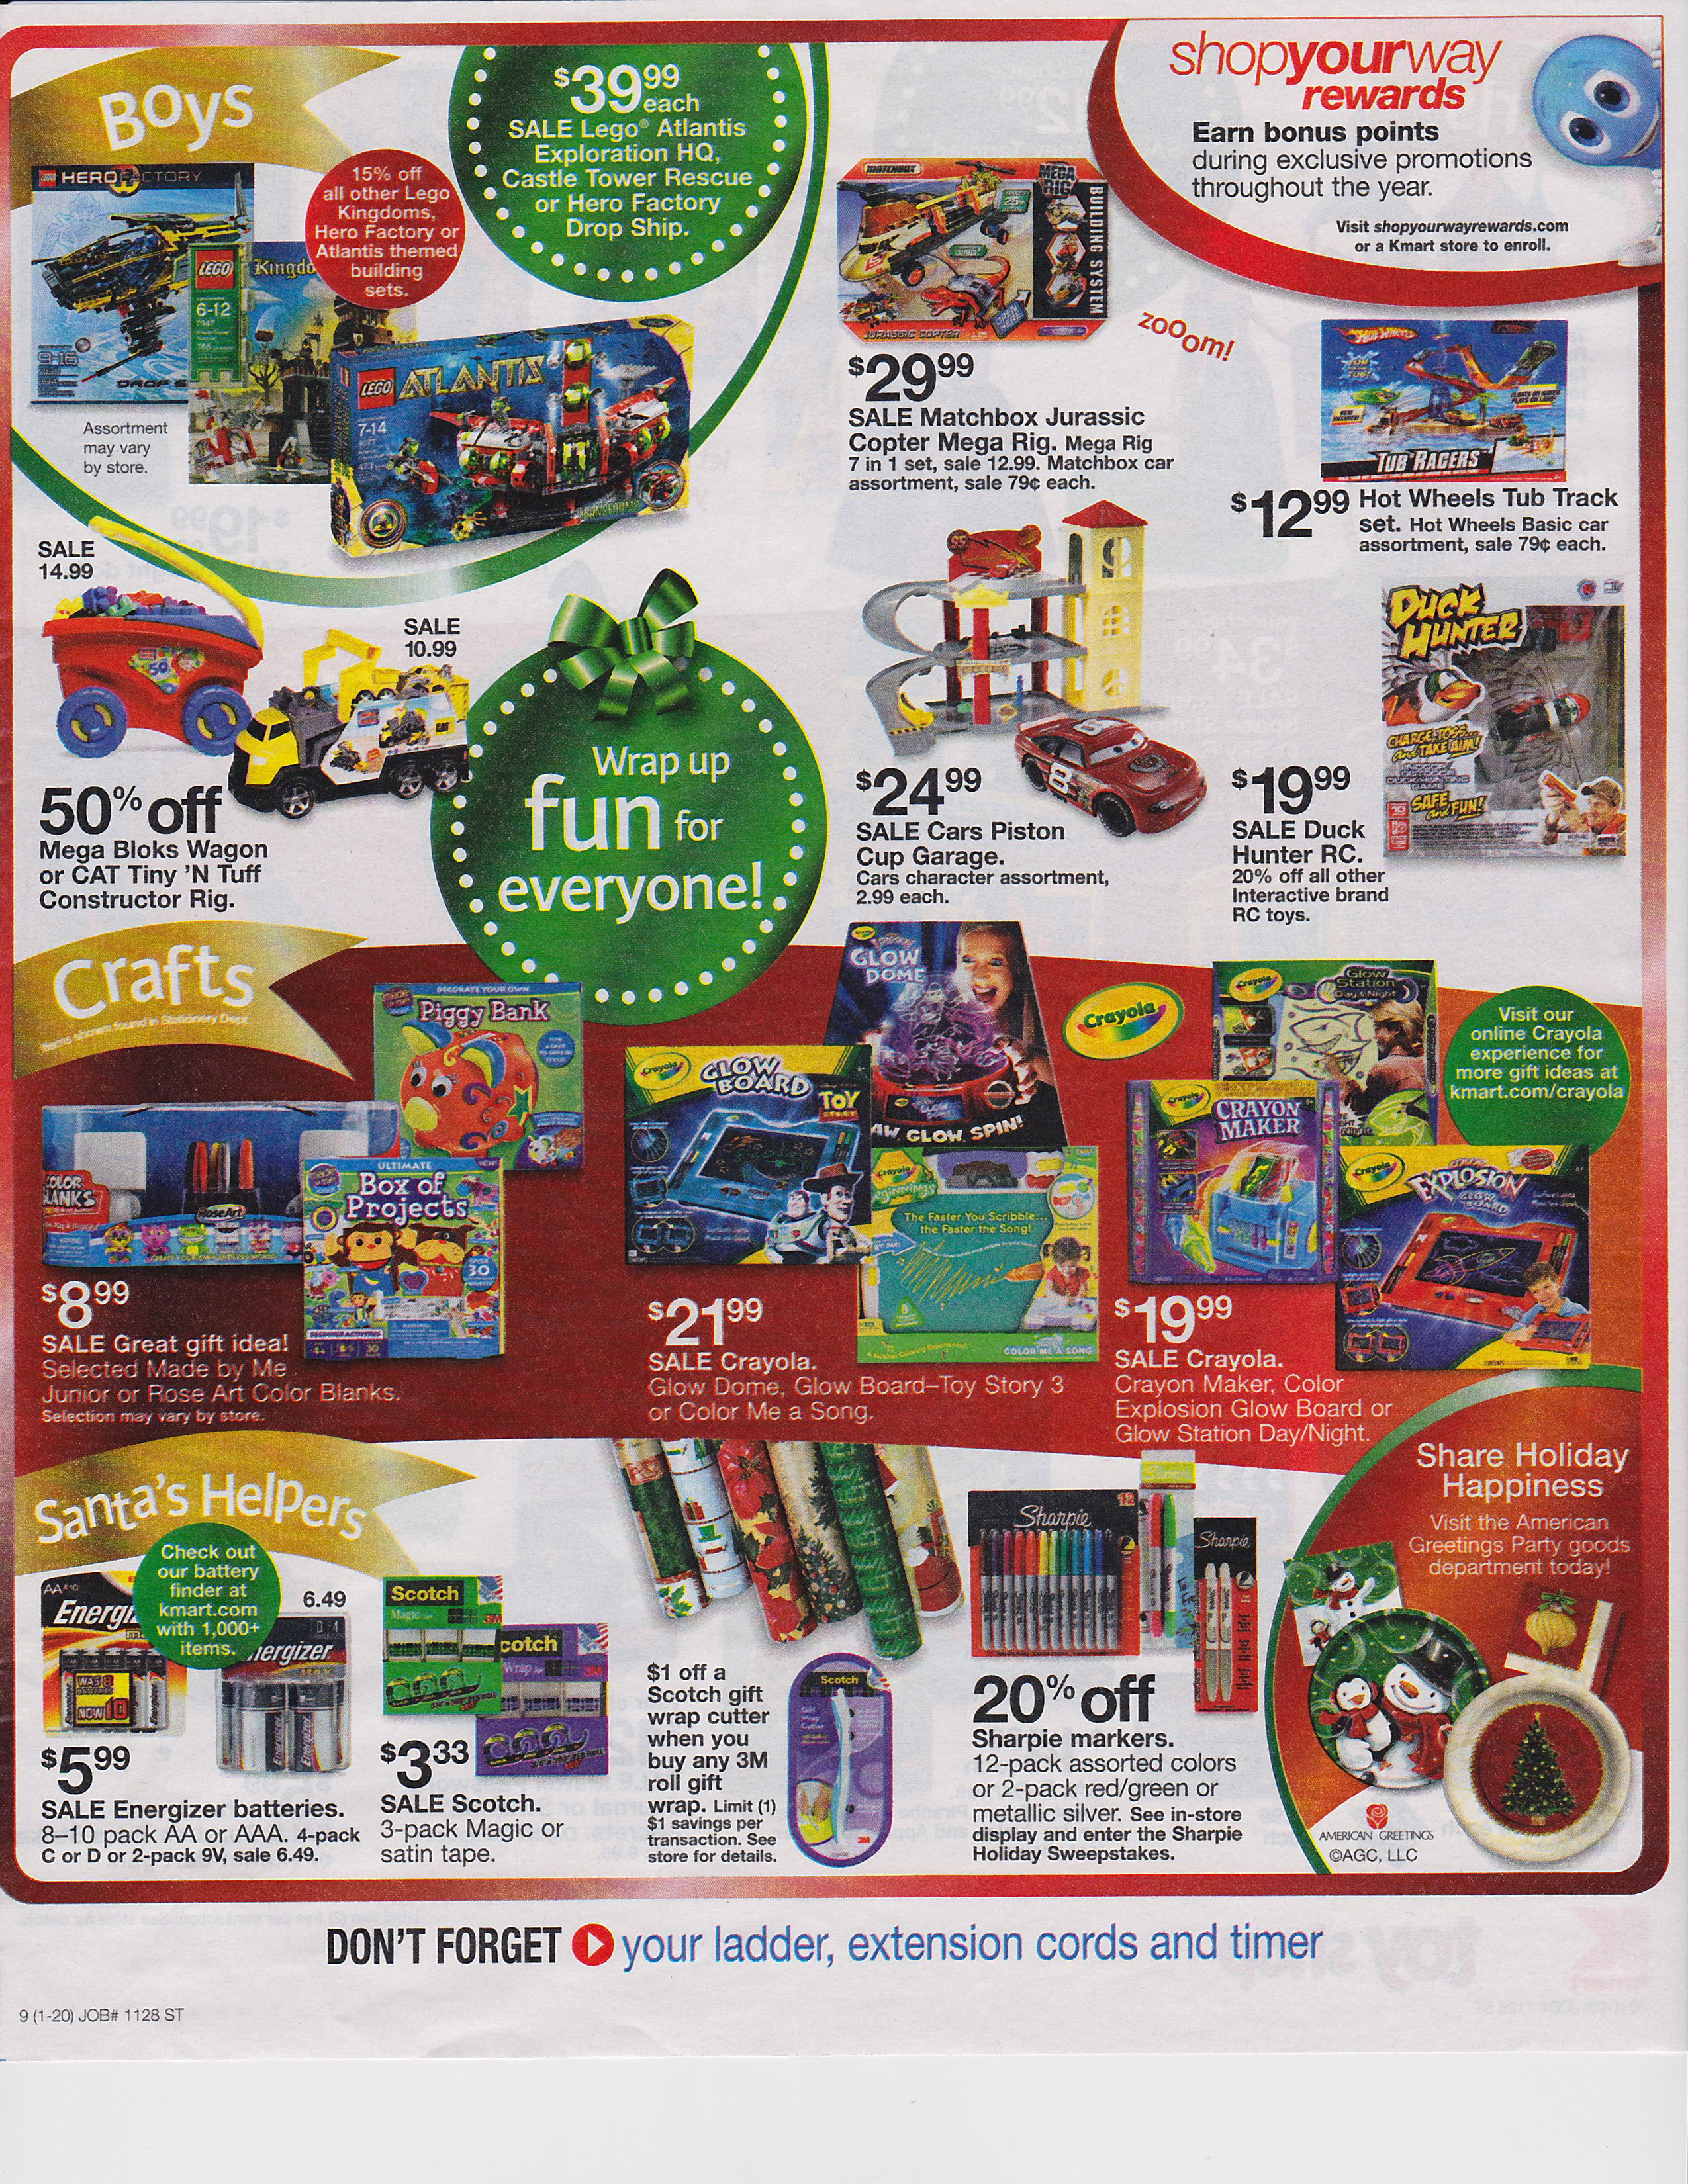 Stereotypical And Counter Stereotypical Advertising For Kids Stuff